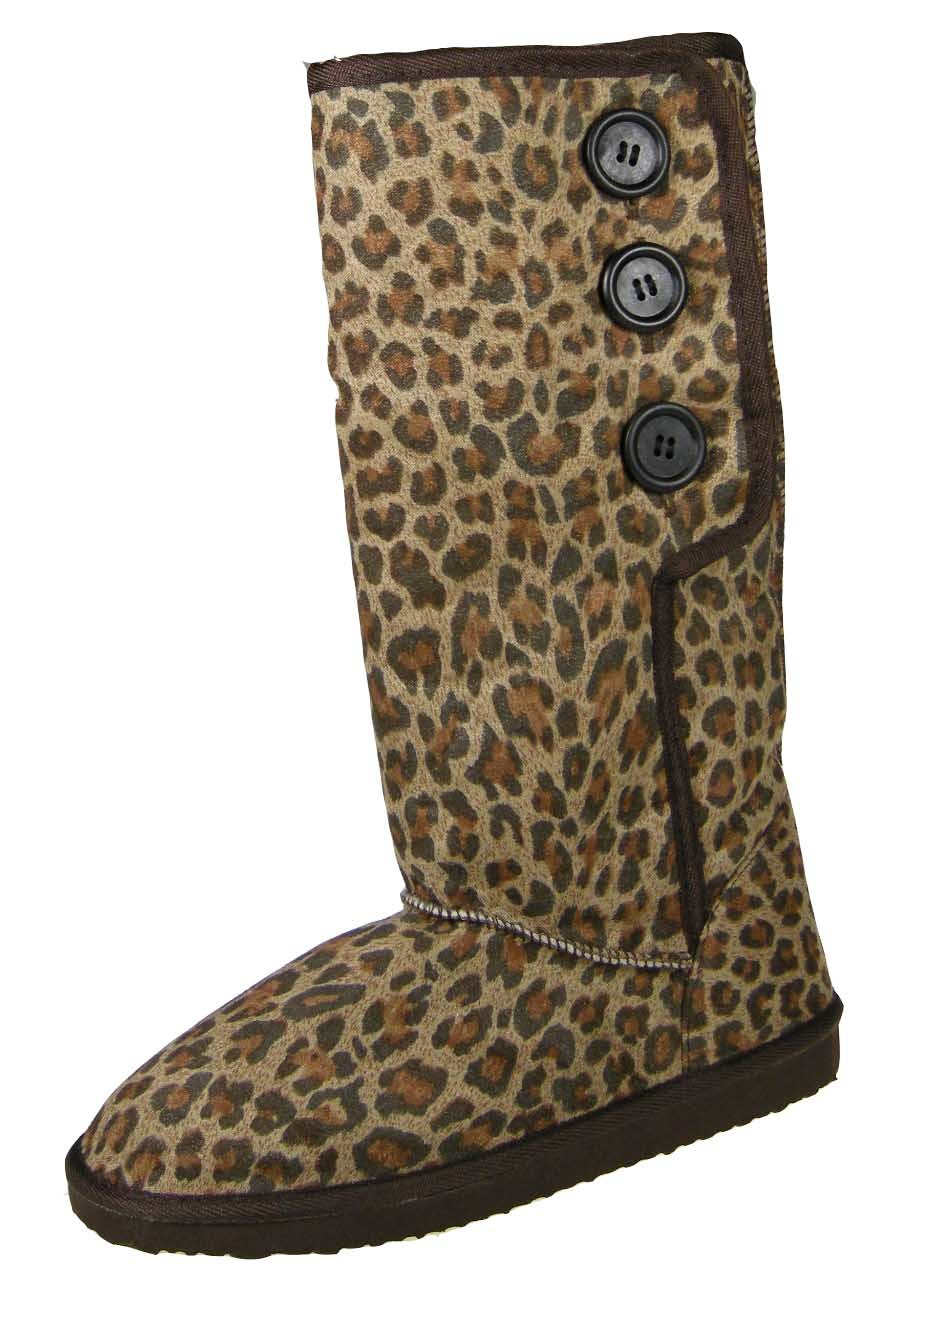 appzdnatw.cf: cheetah boots for girls. Interesting Finds Updated Daily. Amazon Try Prime All Signature Kids Warm Tall Winter Fur Boots with Buttons Shearling Lined. by Signature. $ - $ $ 9 $ 12 99 Prime. FREE Shipping on eligible orders. Some sizes/colors are Prime eligible.